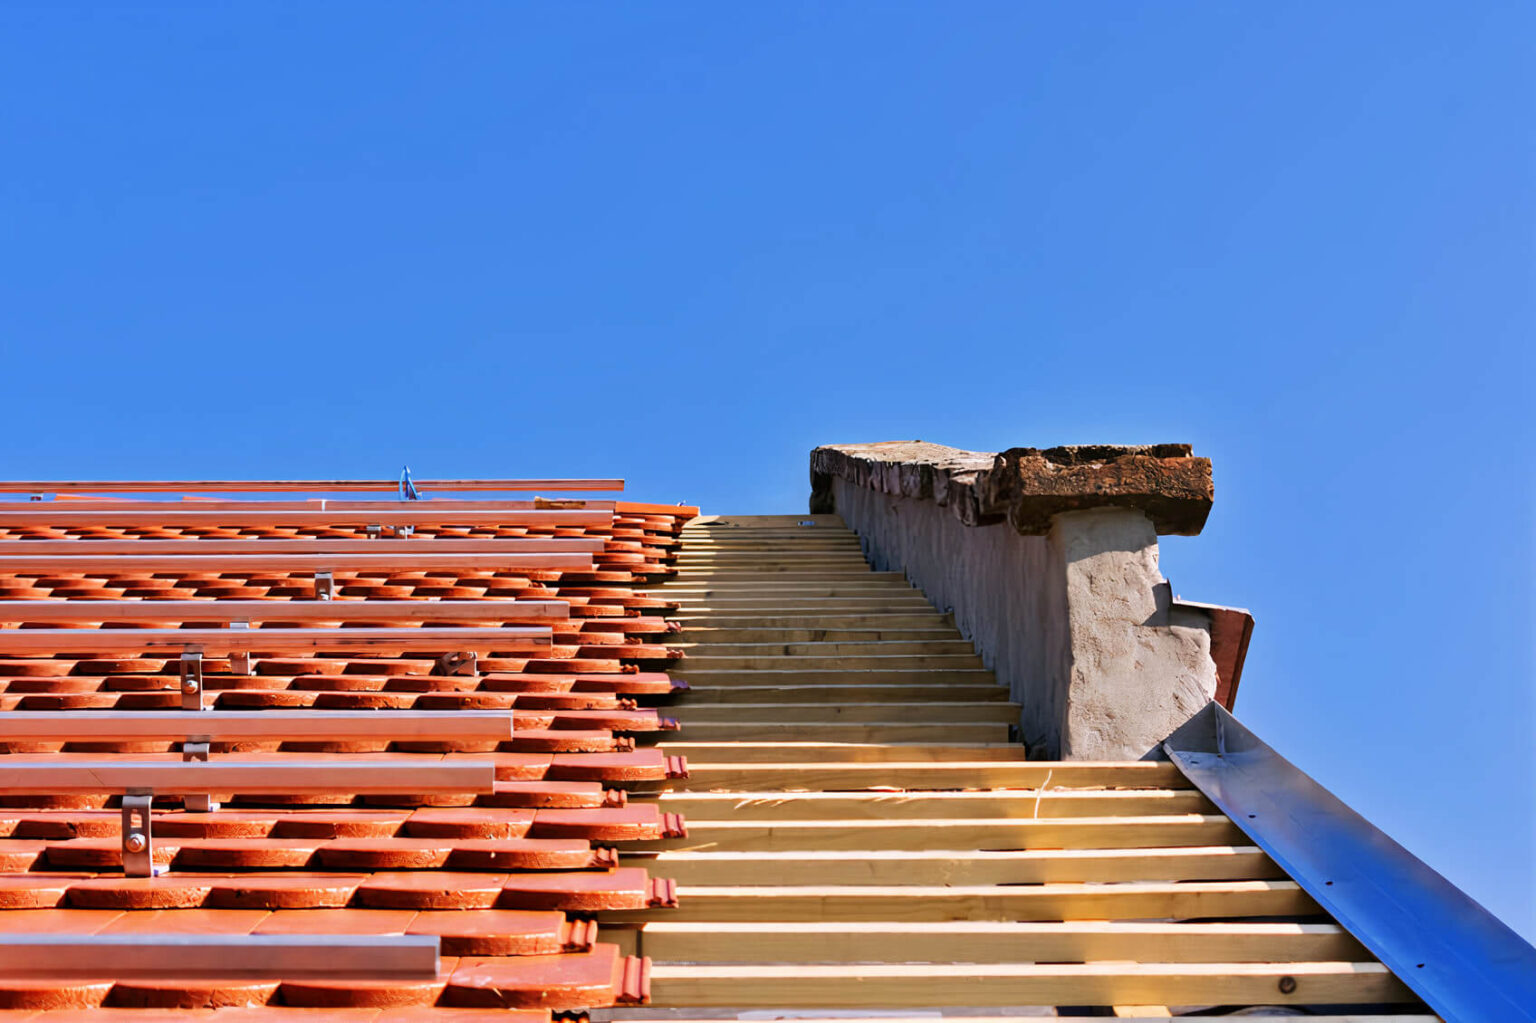 clay-tile-roofing-hanson-roofing